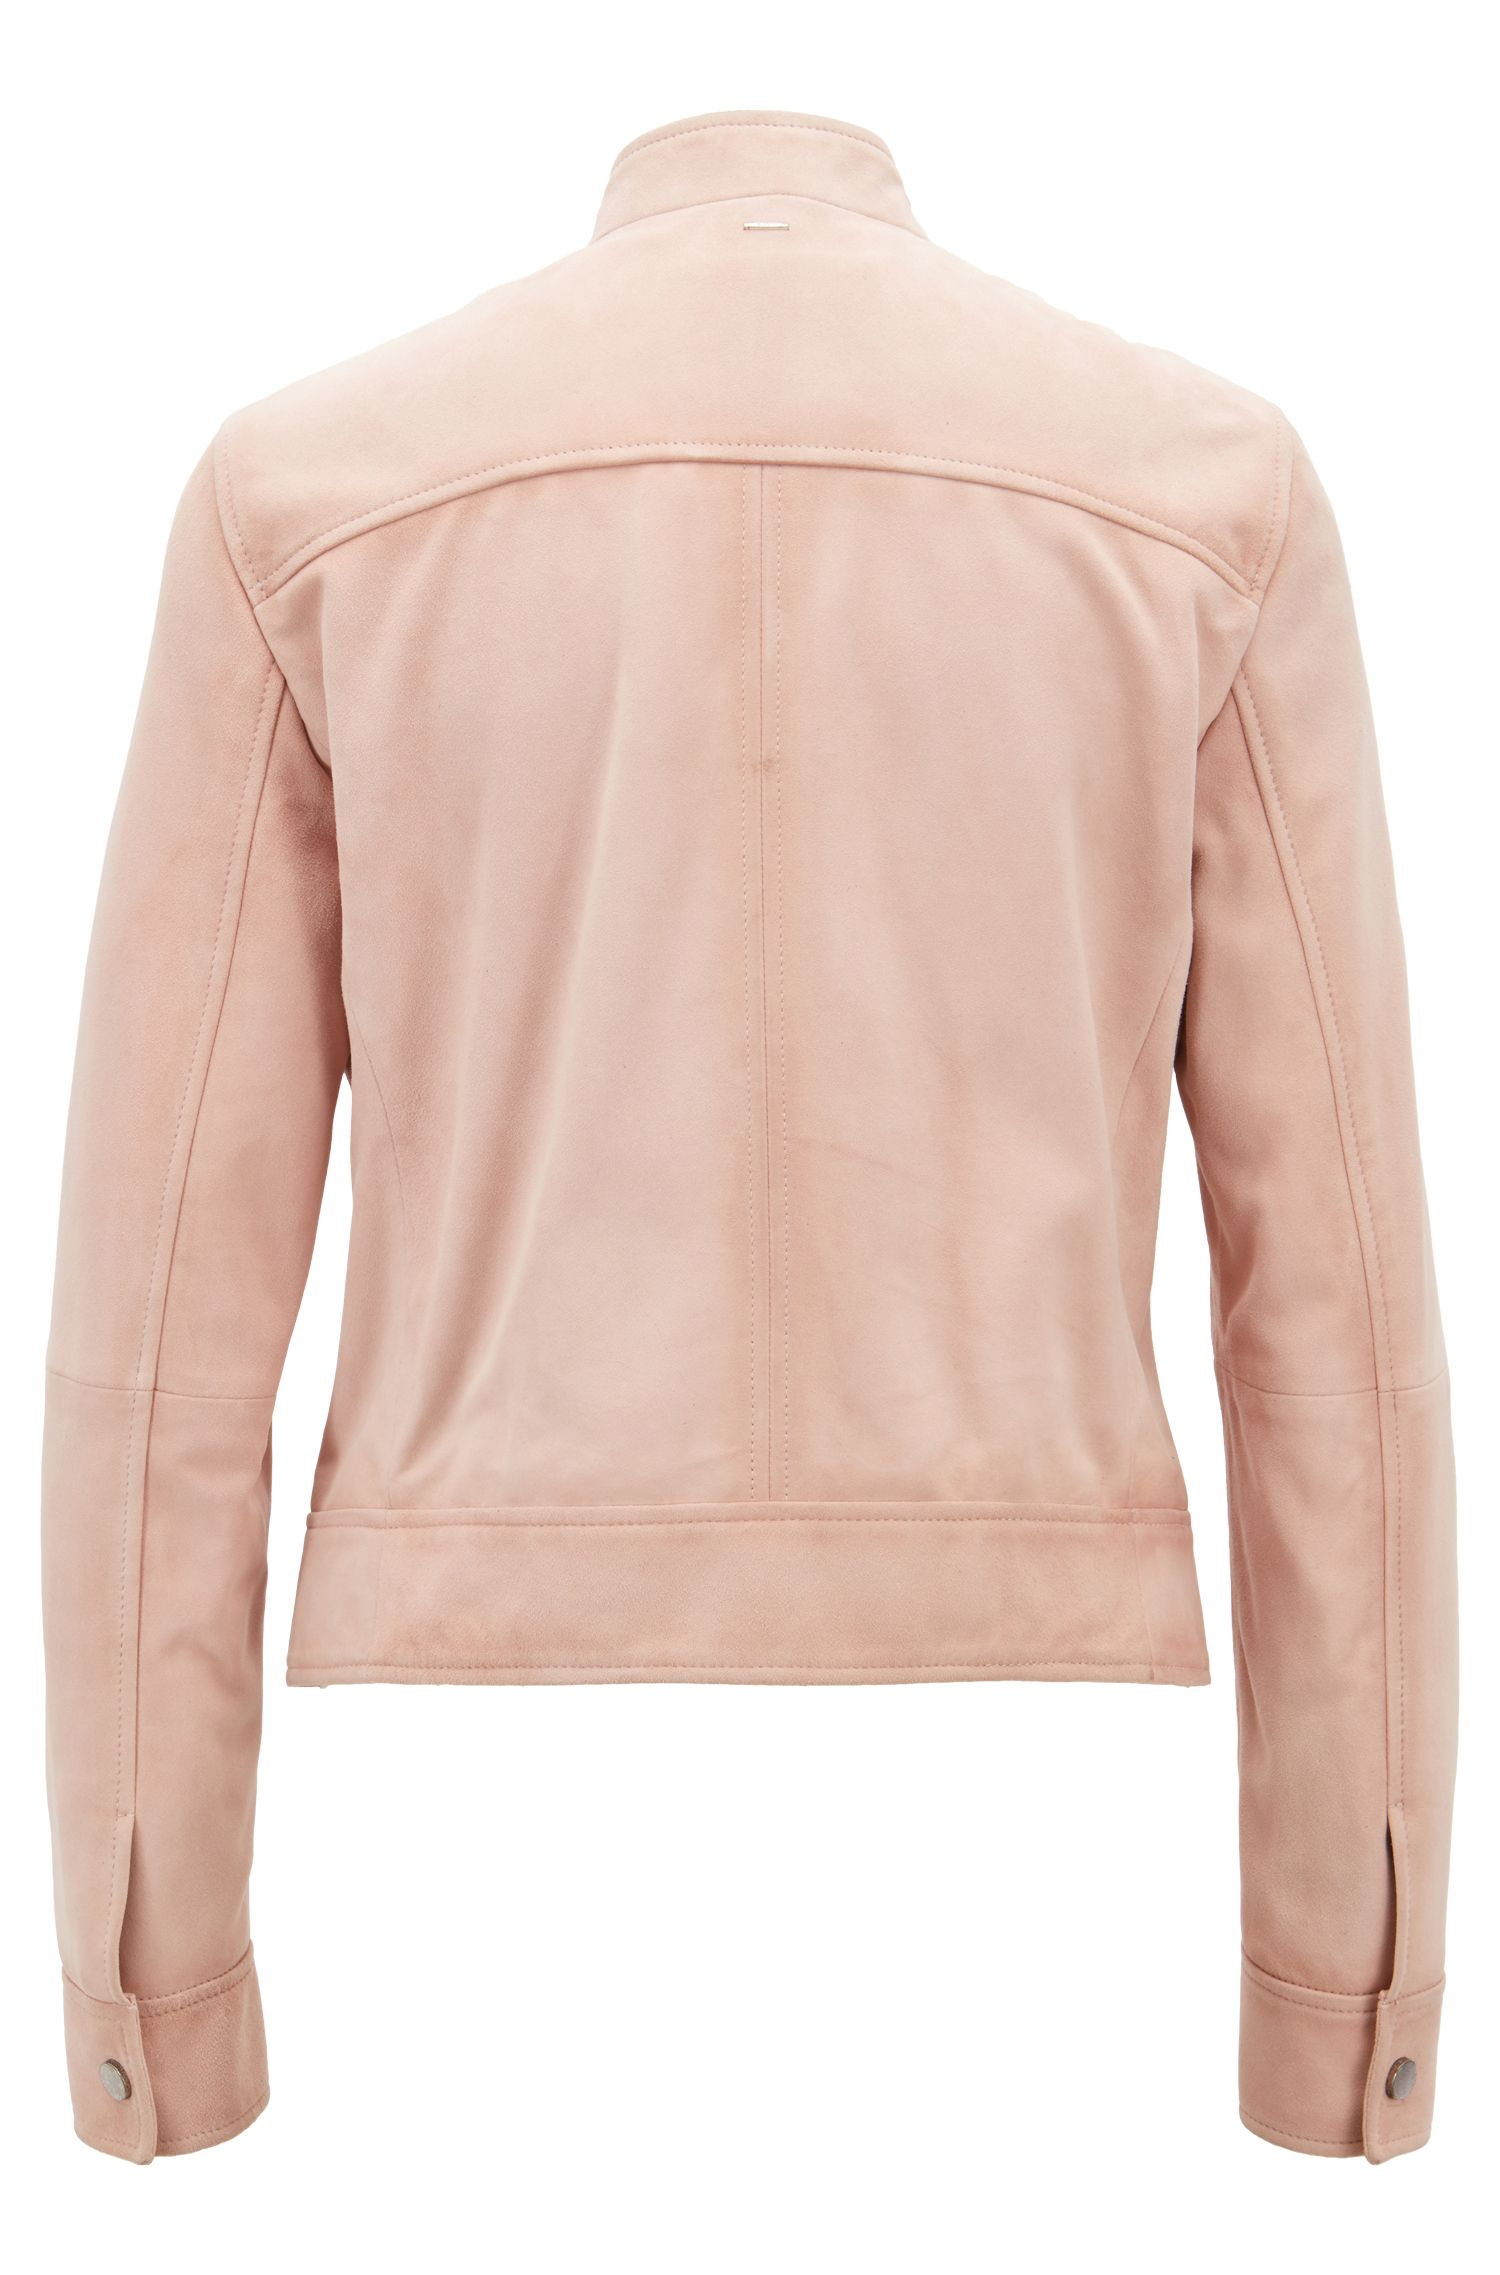 Hugo Boss - Bomber jacket in suede leather with patch pockets - 3